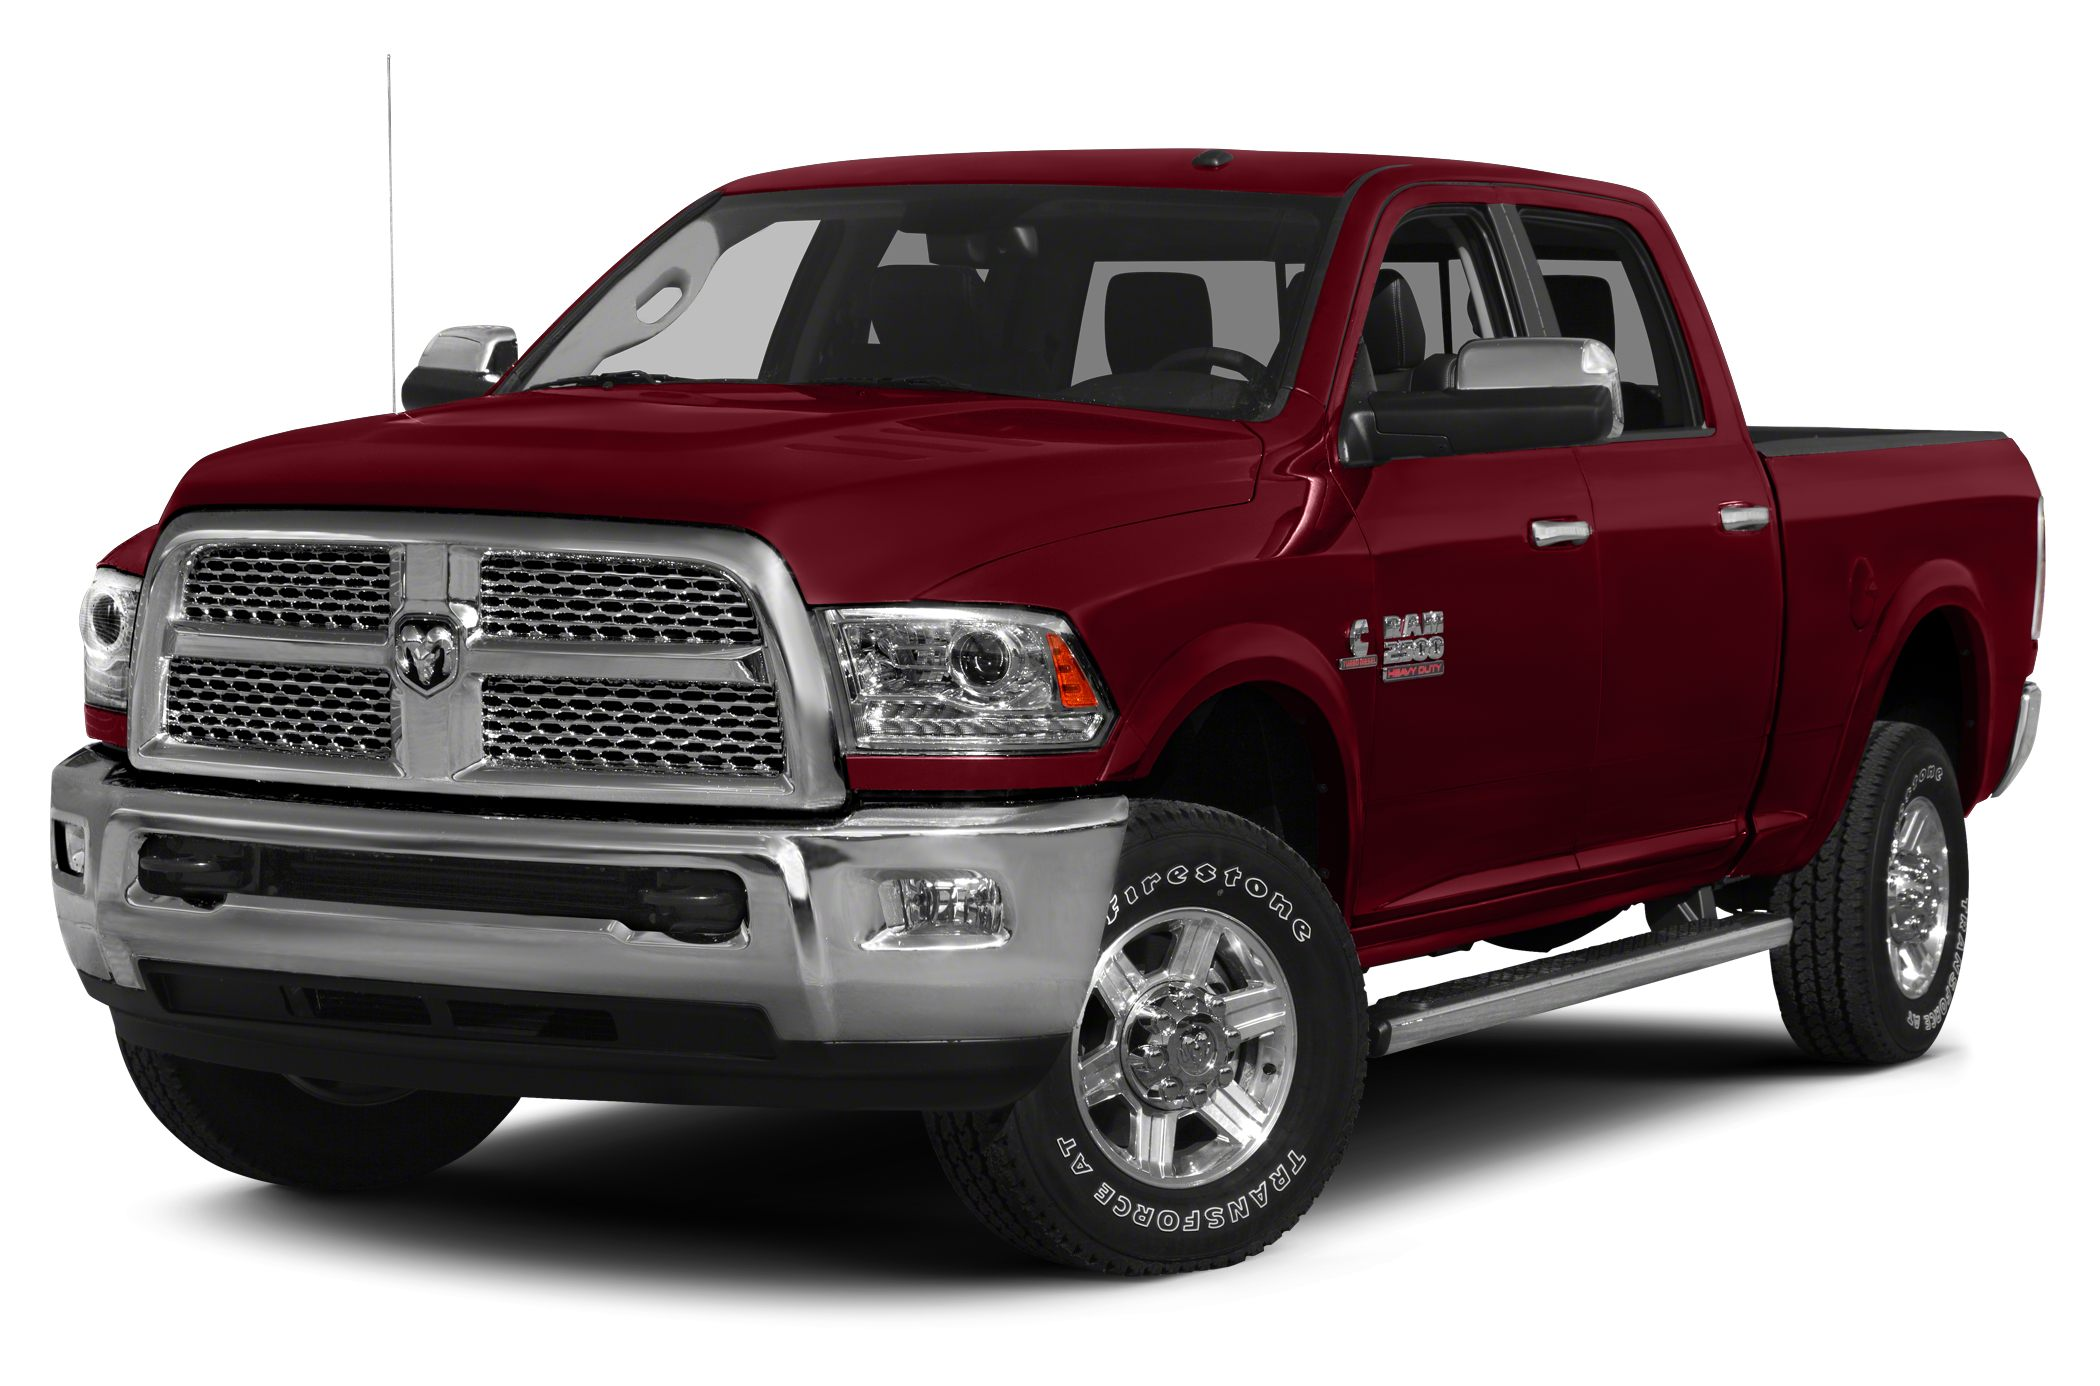 2015 RAM 2500 Laramie Crew Cab Pickup for sale in Carson City for $61,825 with 0 miles